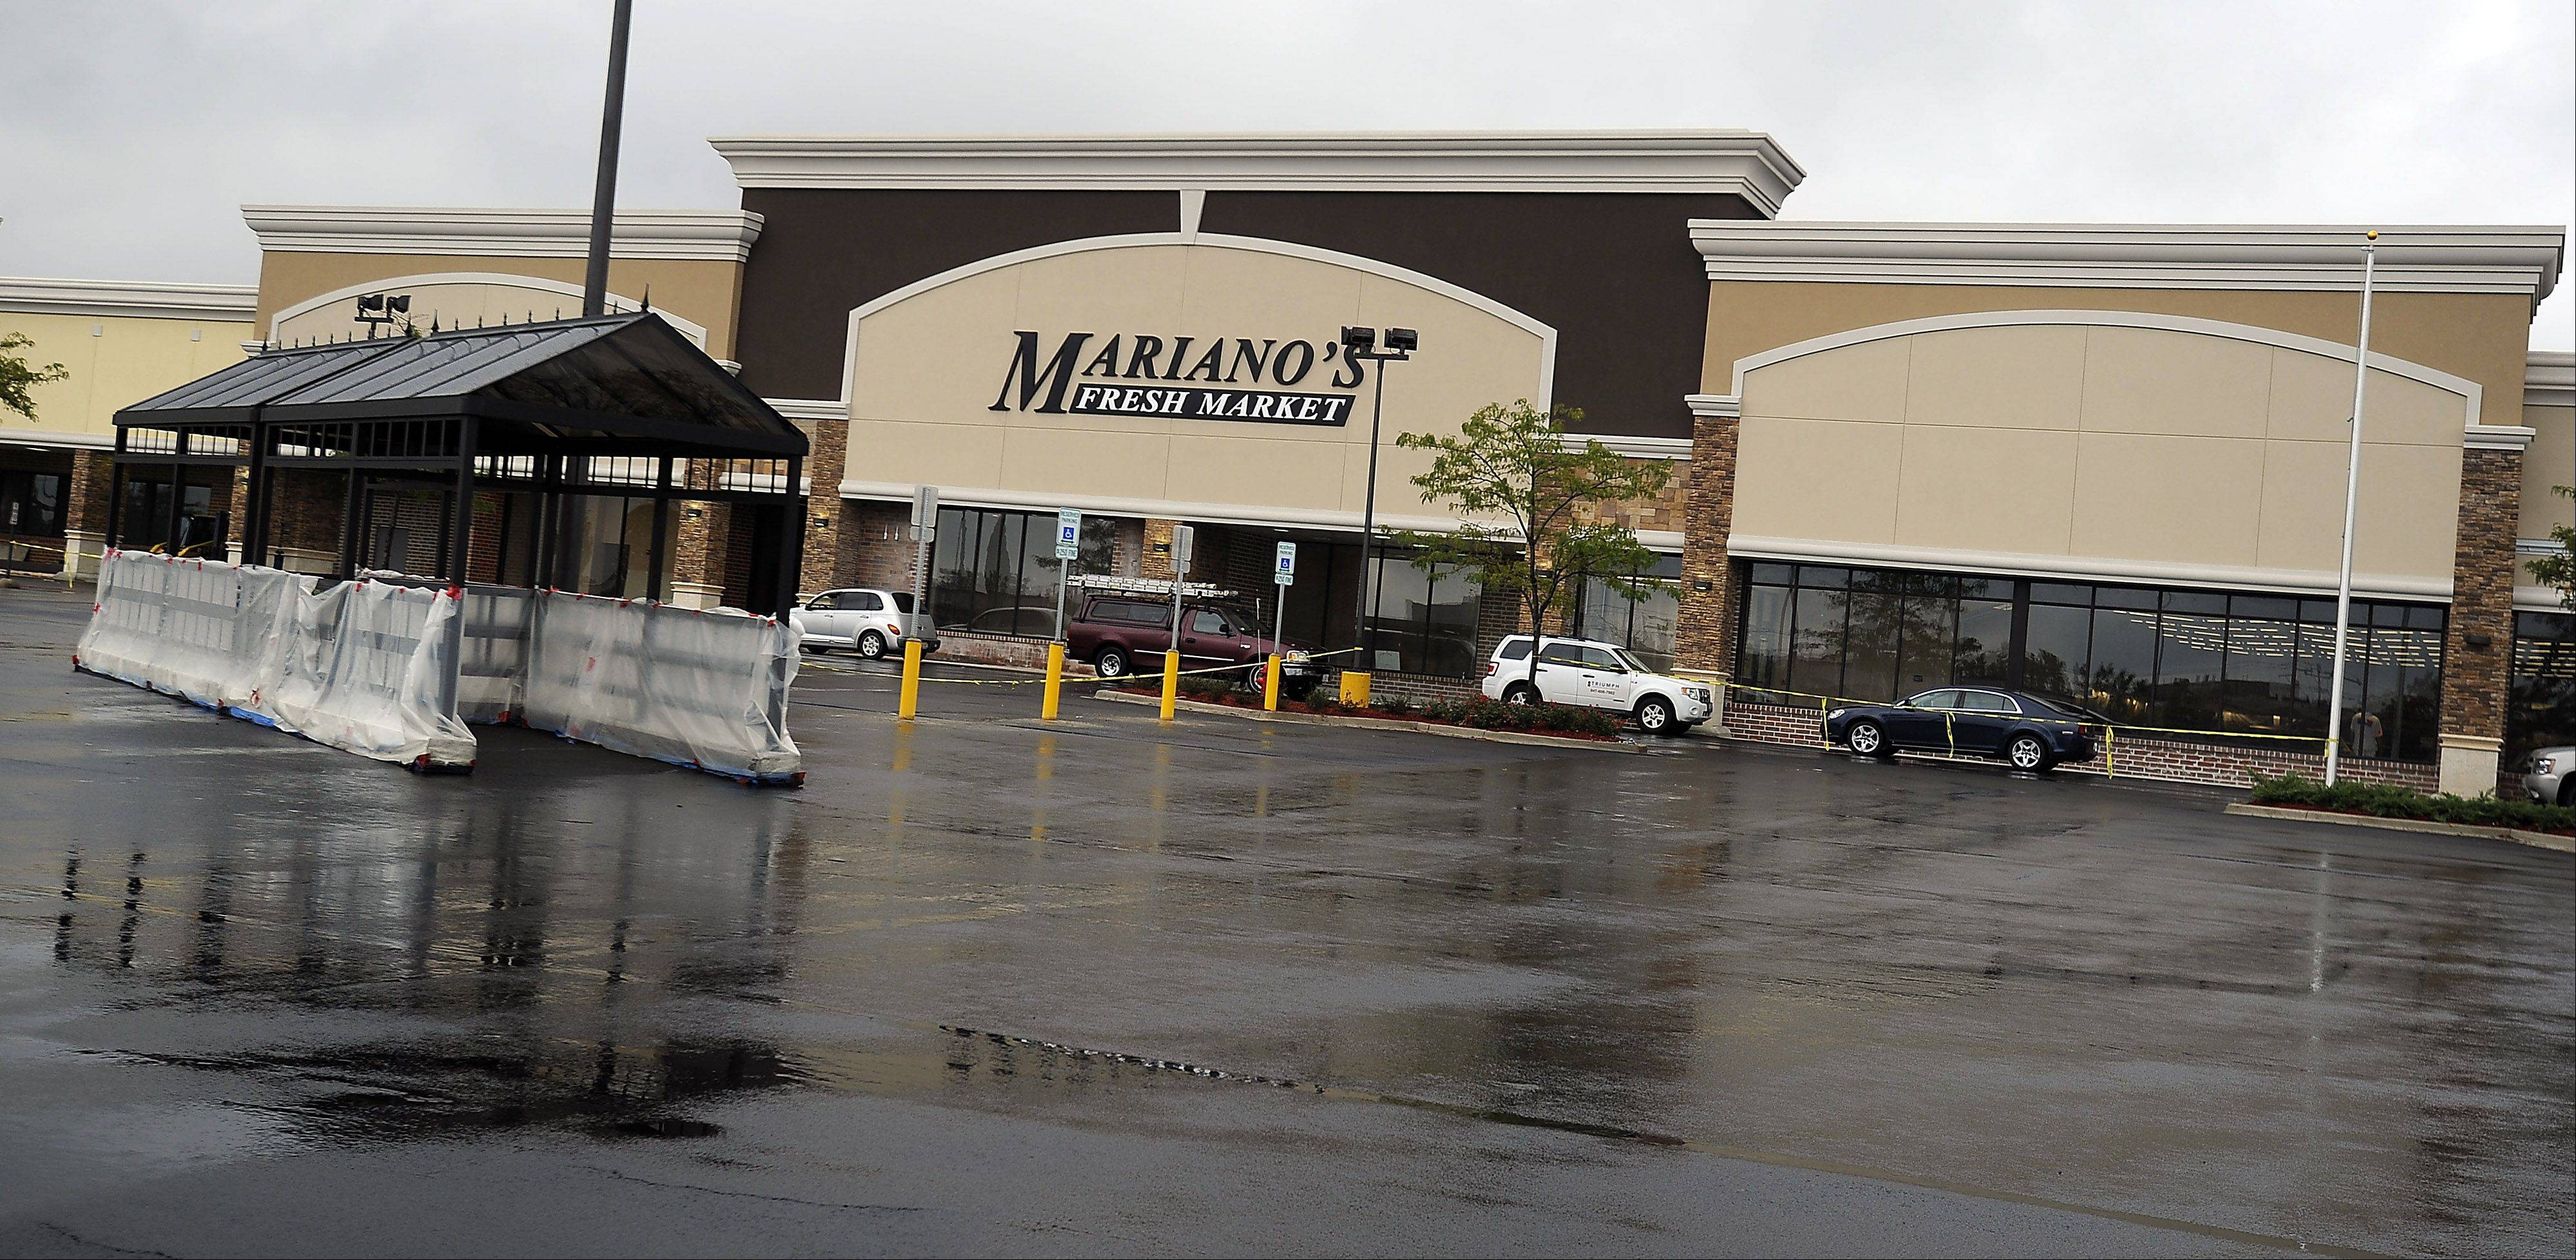 Mariano's Fresh Market is expected to open a new location in Hoffman Estates near Barrington and Golf roads on Tuesday, Aug. 28, a company spokeswoman said Monday.